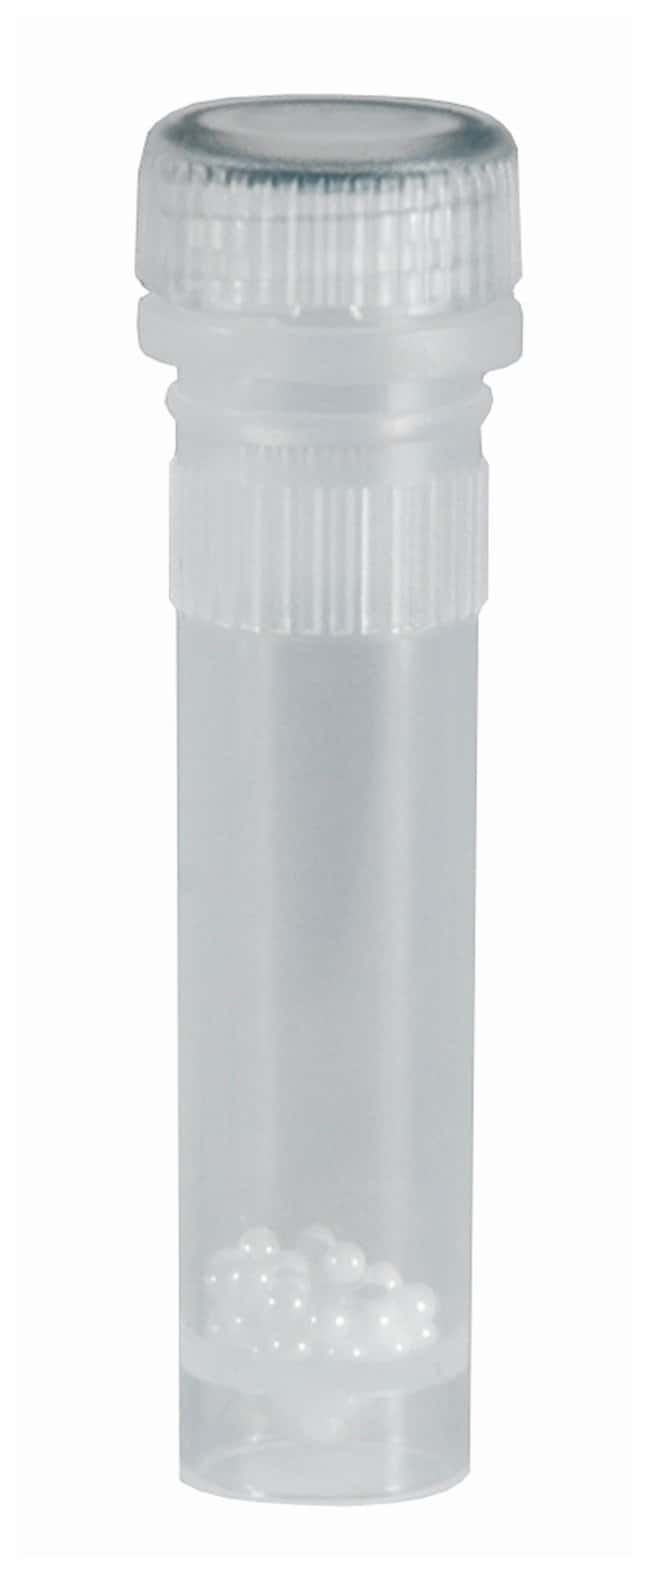 Fisherbrand™ Pre-Filled Bead Mill Tubes